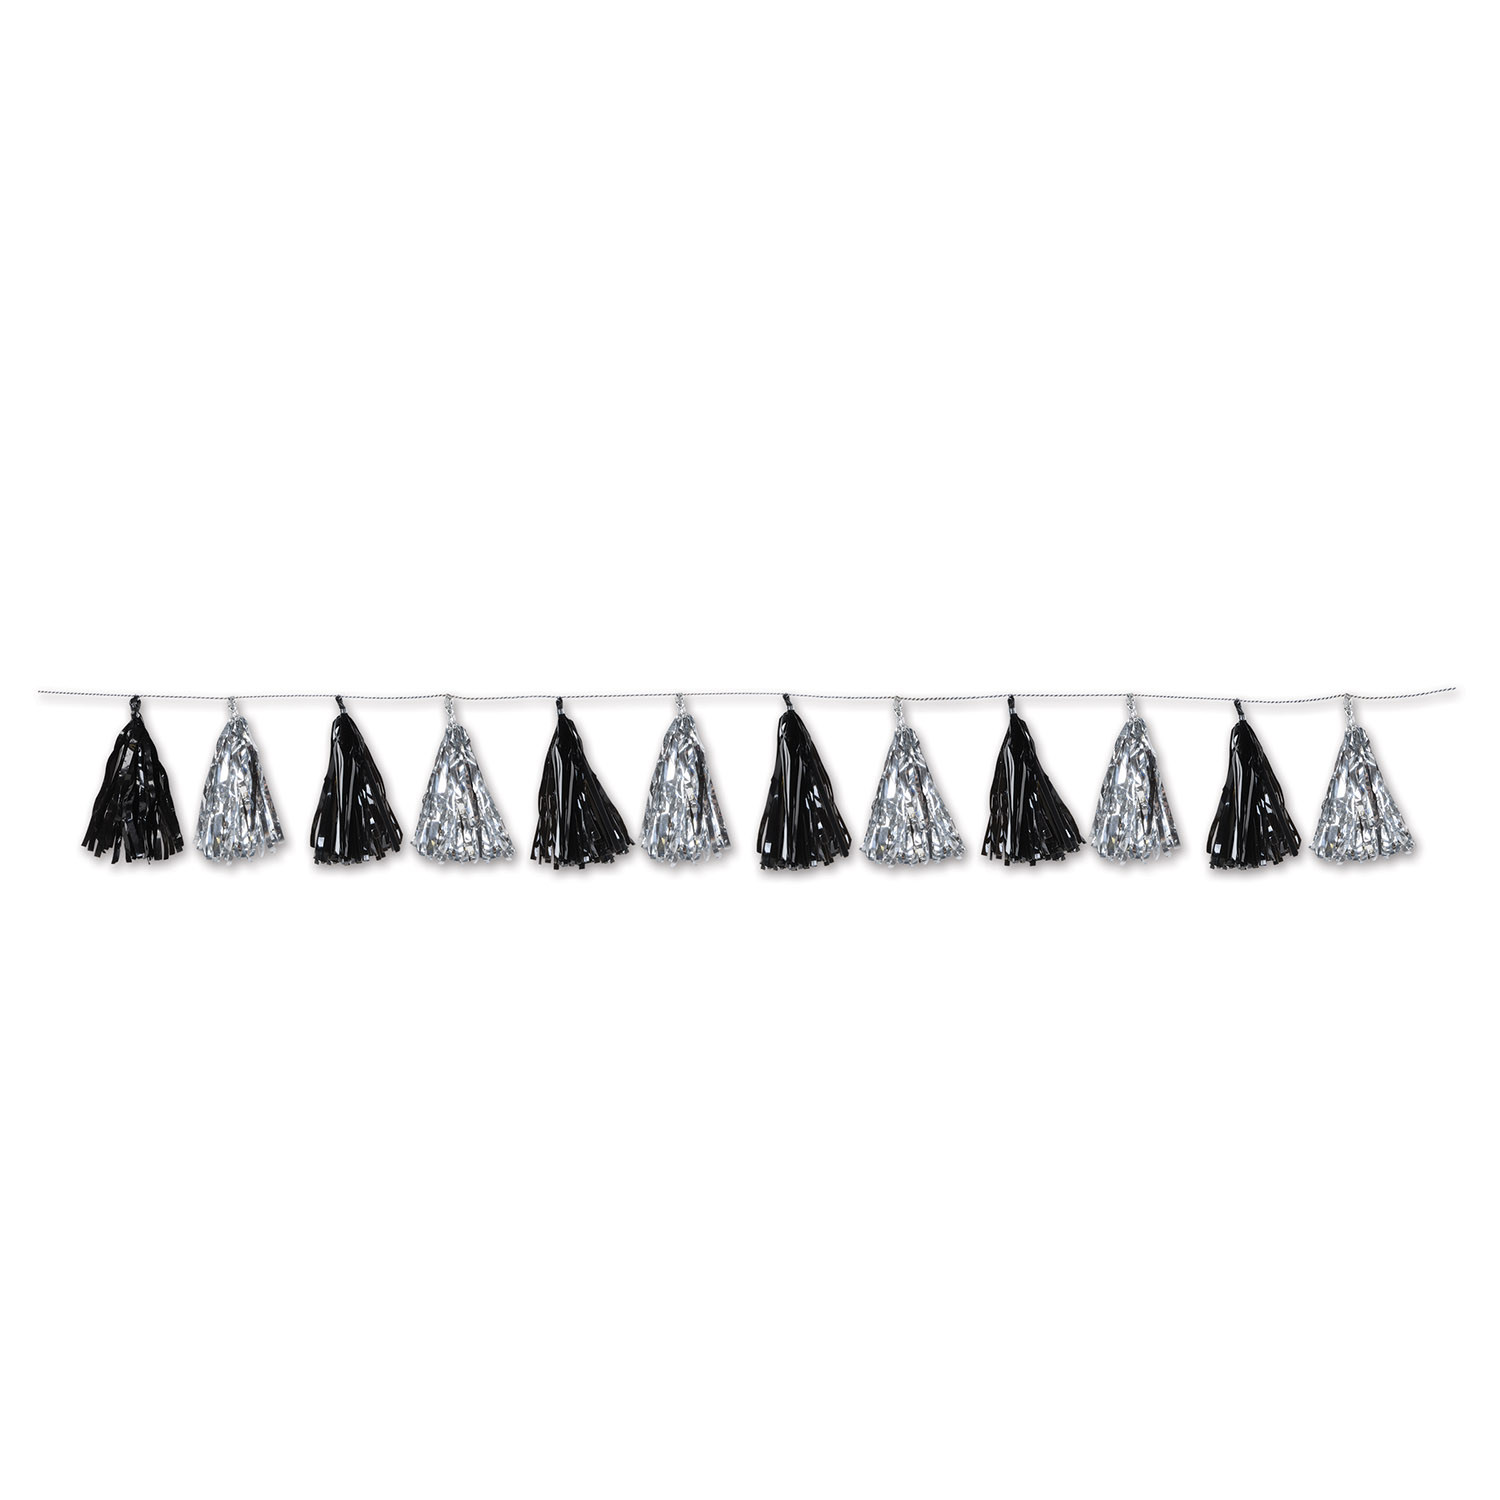 Metallic Tassel Garland (Pack of 12) Metallic Tassel Garland, decoration, new years eve, black, silver, wholesale, inexpensive, bulk